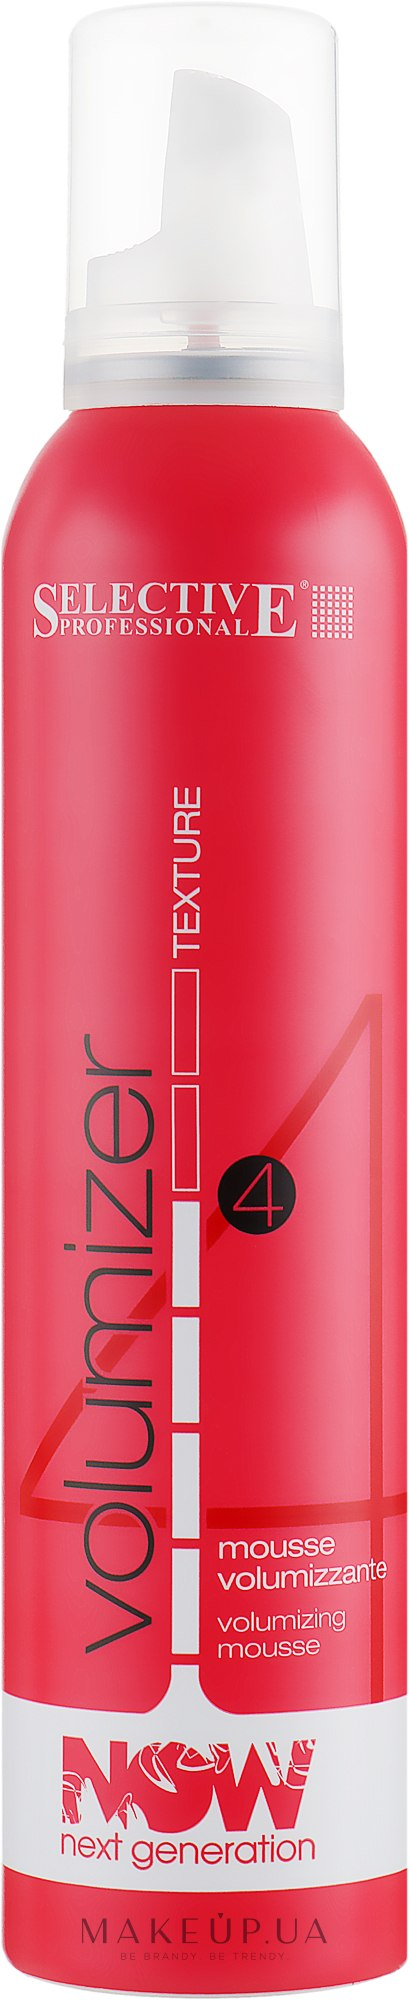 Мусс придающий объем волосам - Selective Professional Now Next Generation Volumizer Mousse Bombola — фото 250ml